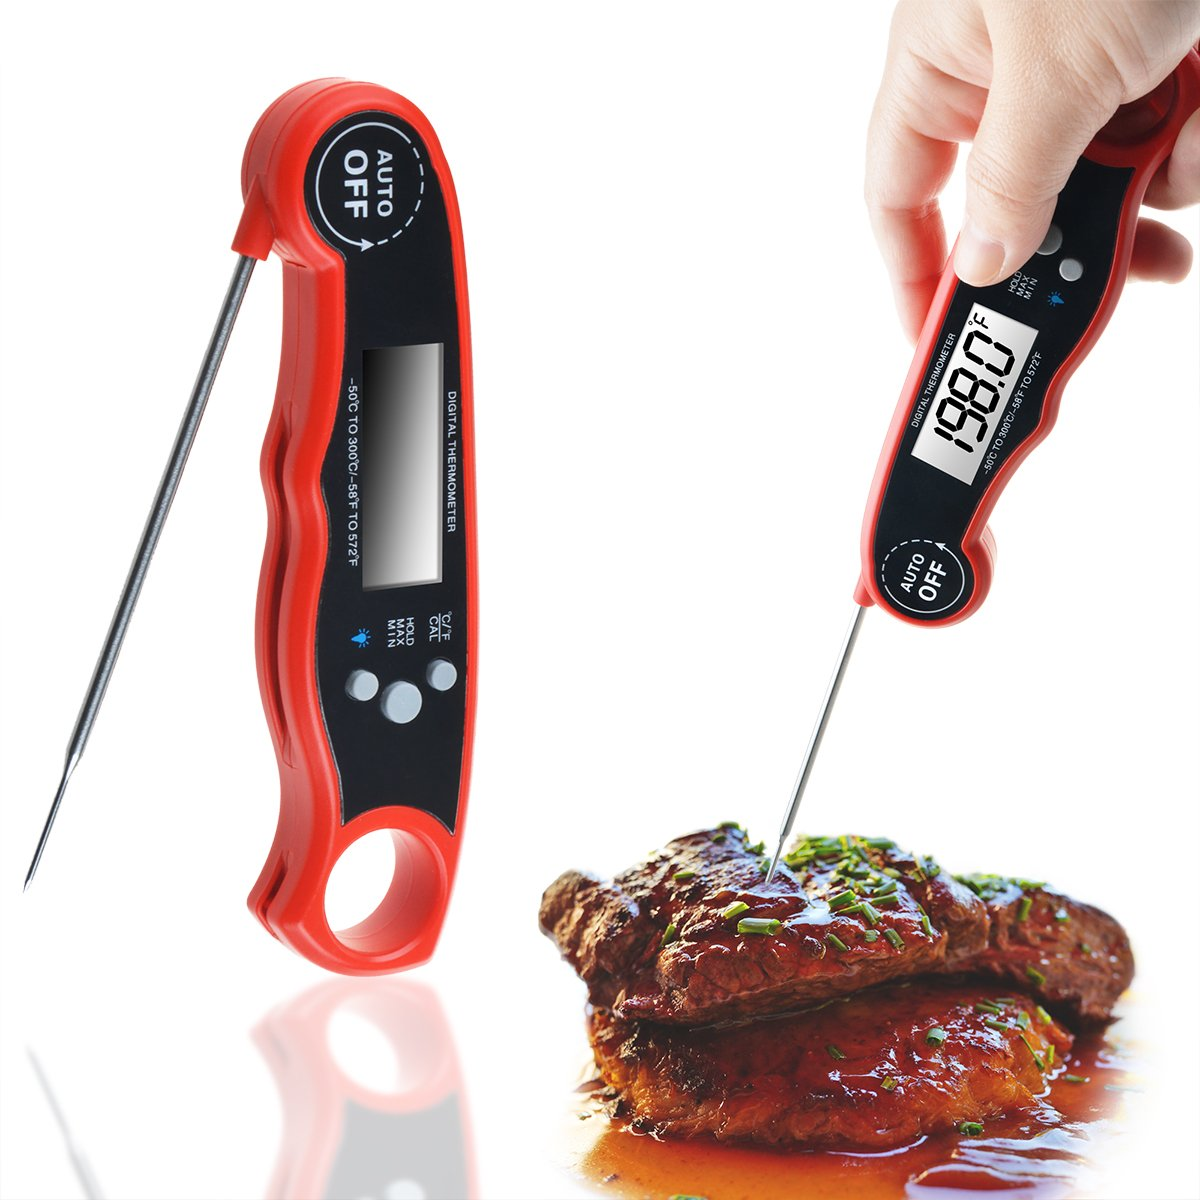 WeGuard Cooking Thermometer Instant Read Digital Meat Portable Size Food, Red